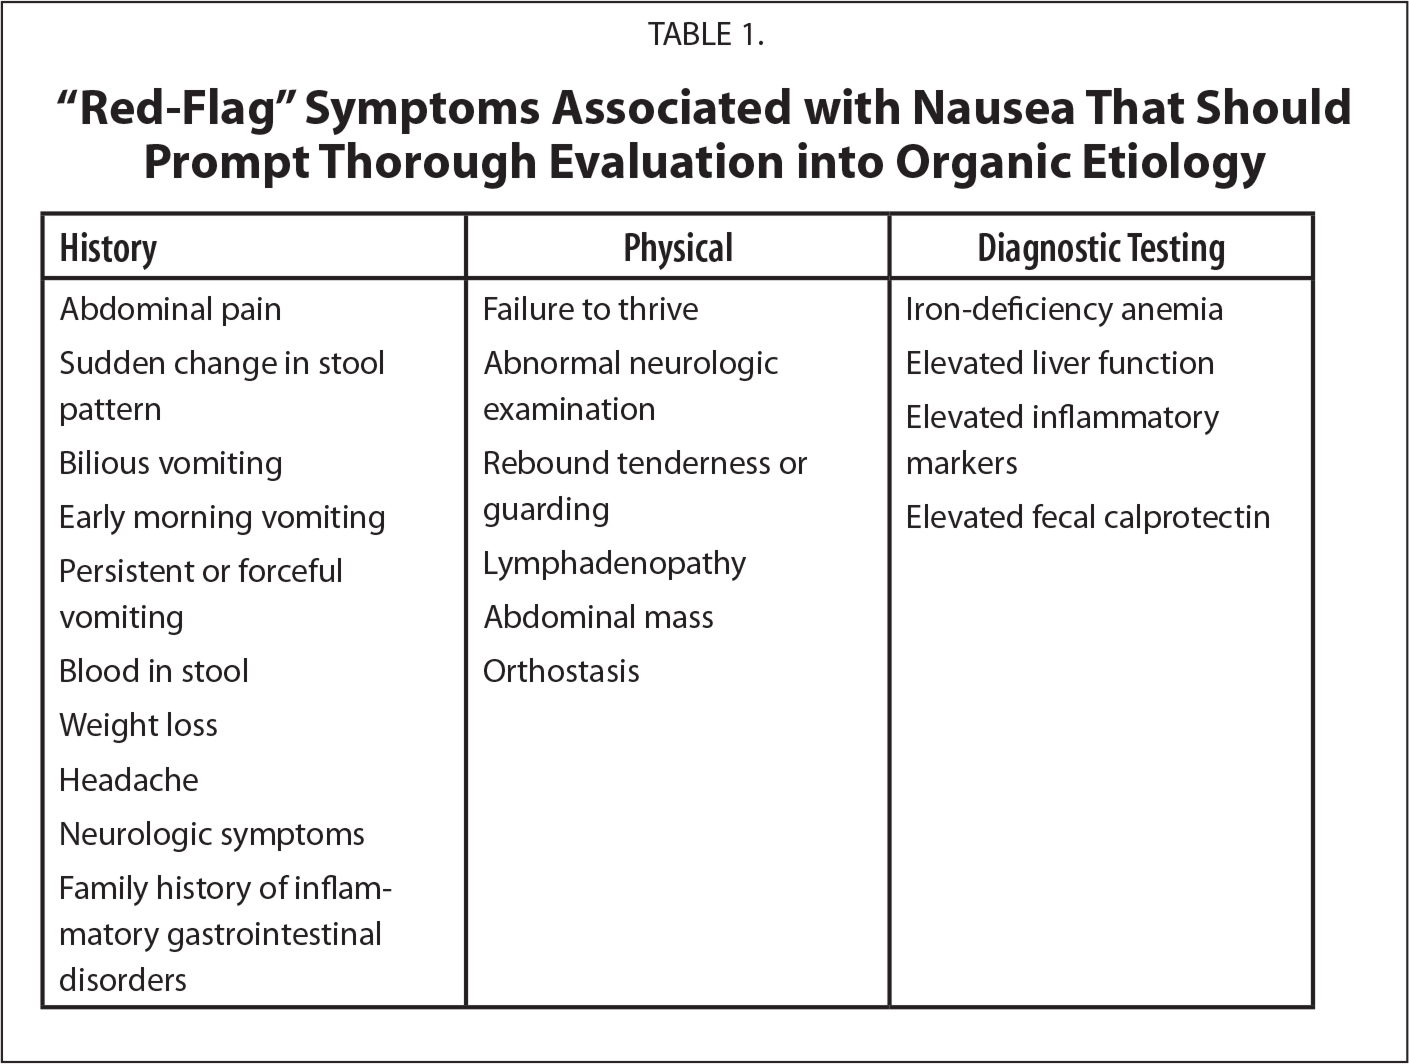 """Red-Flag"" Symptoms Associated with Nausea That Should Prompt Thorough Evaluation into Organic Etiology"